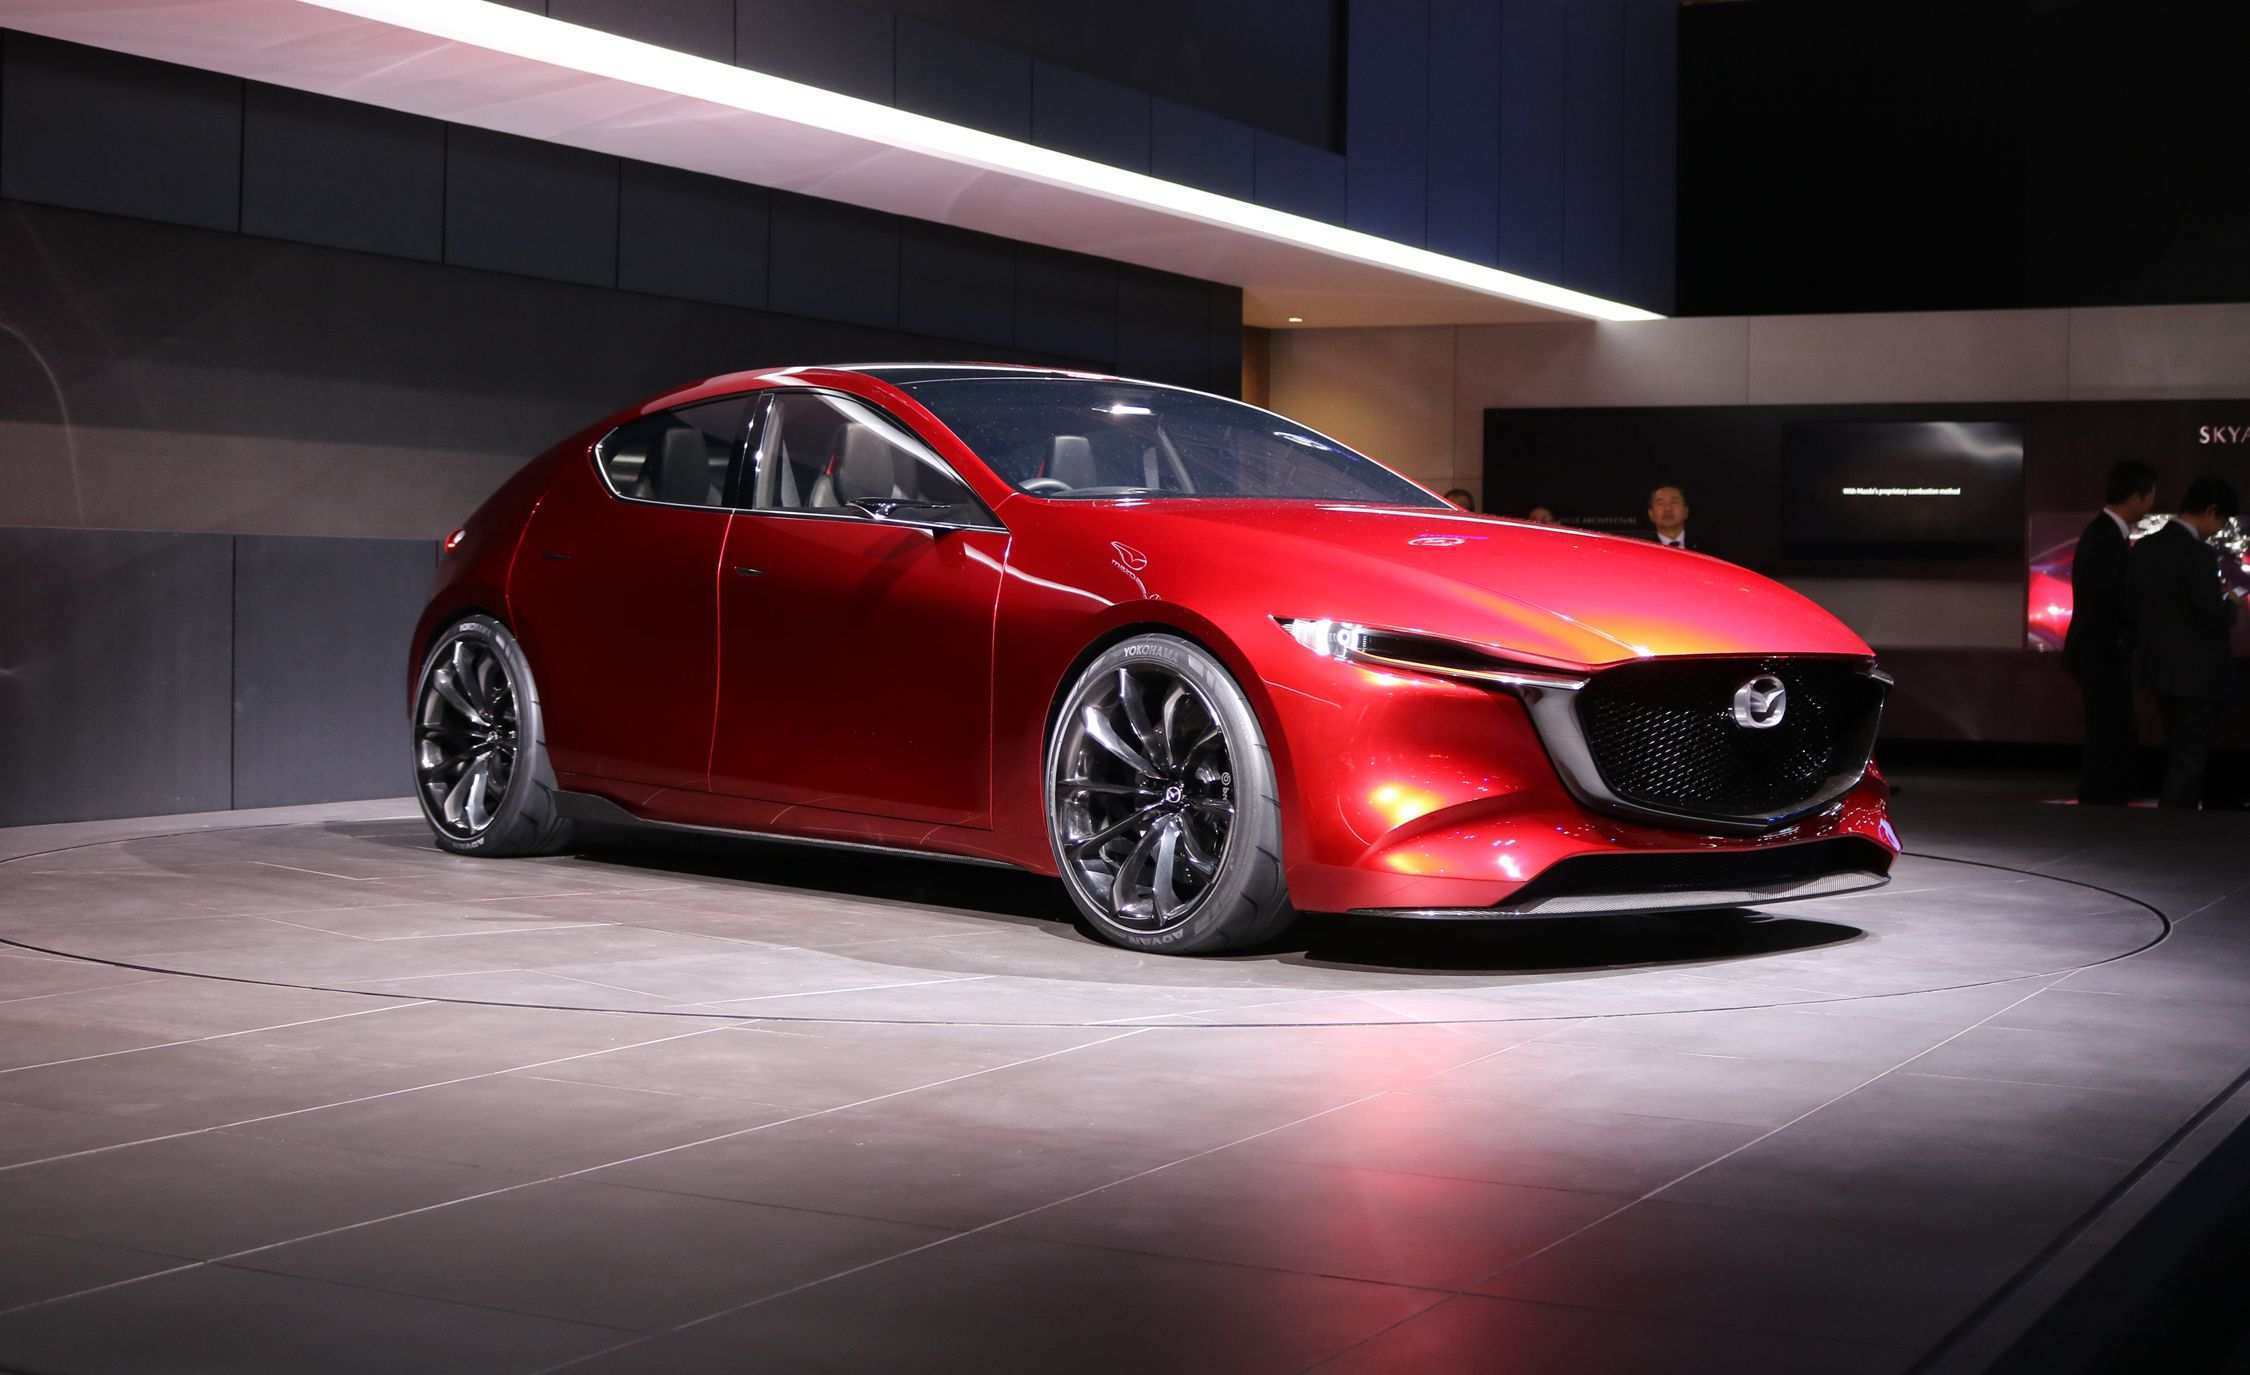 74 New Mazda Kai 2020 New Concept with Mazda Kai 2020